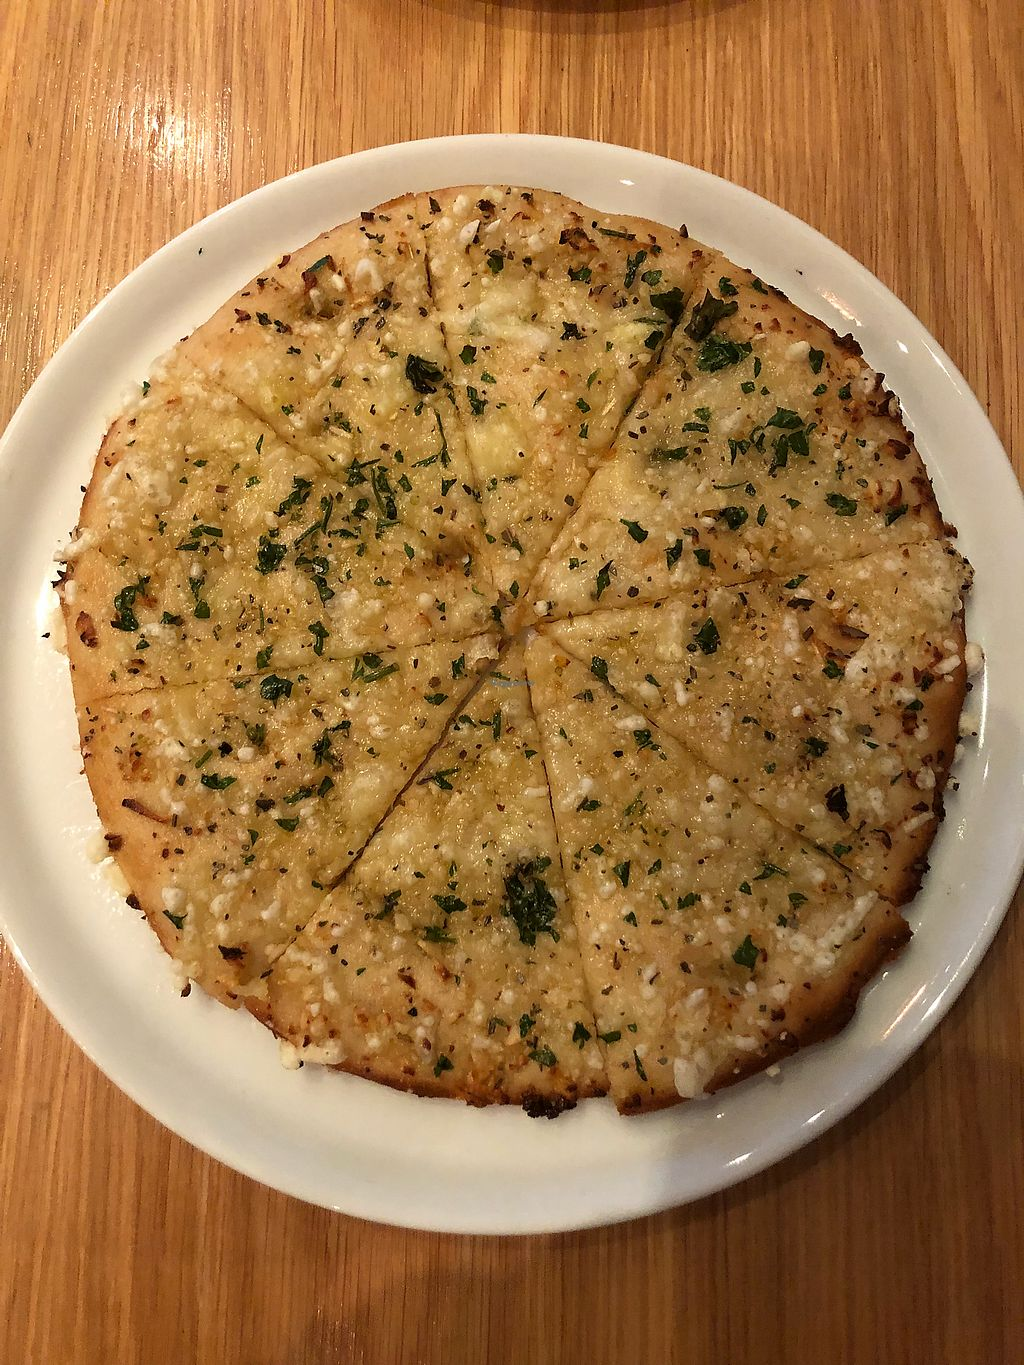 "Photo of Versachi Pizza and Wine Bar  by <a href=""/members/profile/lmd06"">lmd06</a> <br/>Cheesy garlic crust starter  <br/> December 28, 2017  - <a href='/contact/abuse/image/98925/339920'>Report</a>"